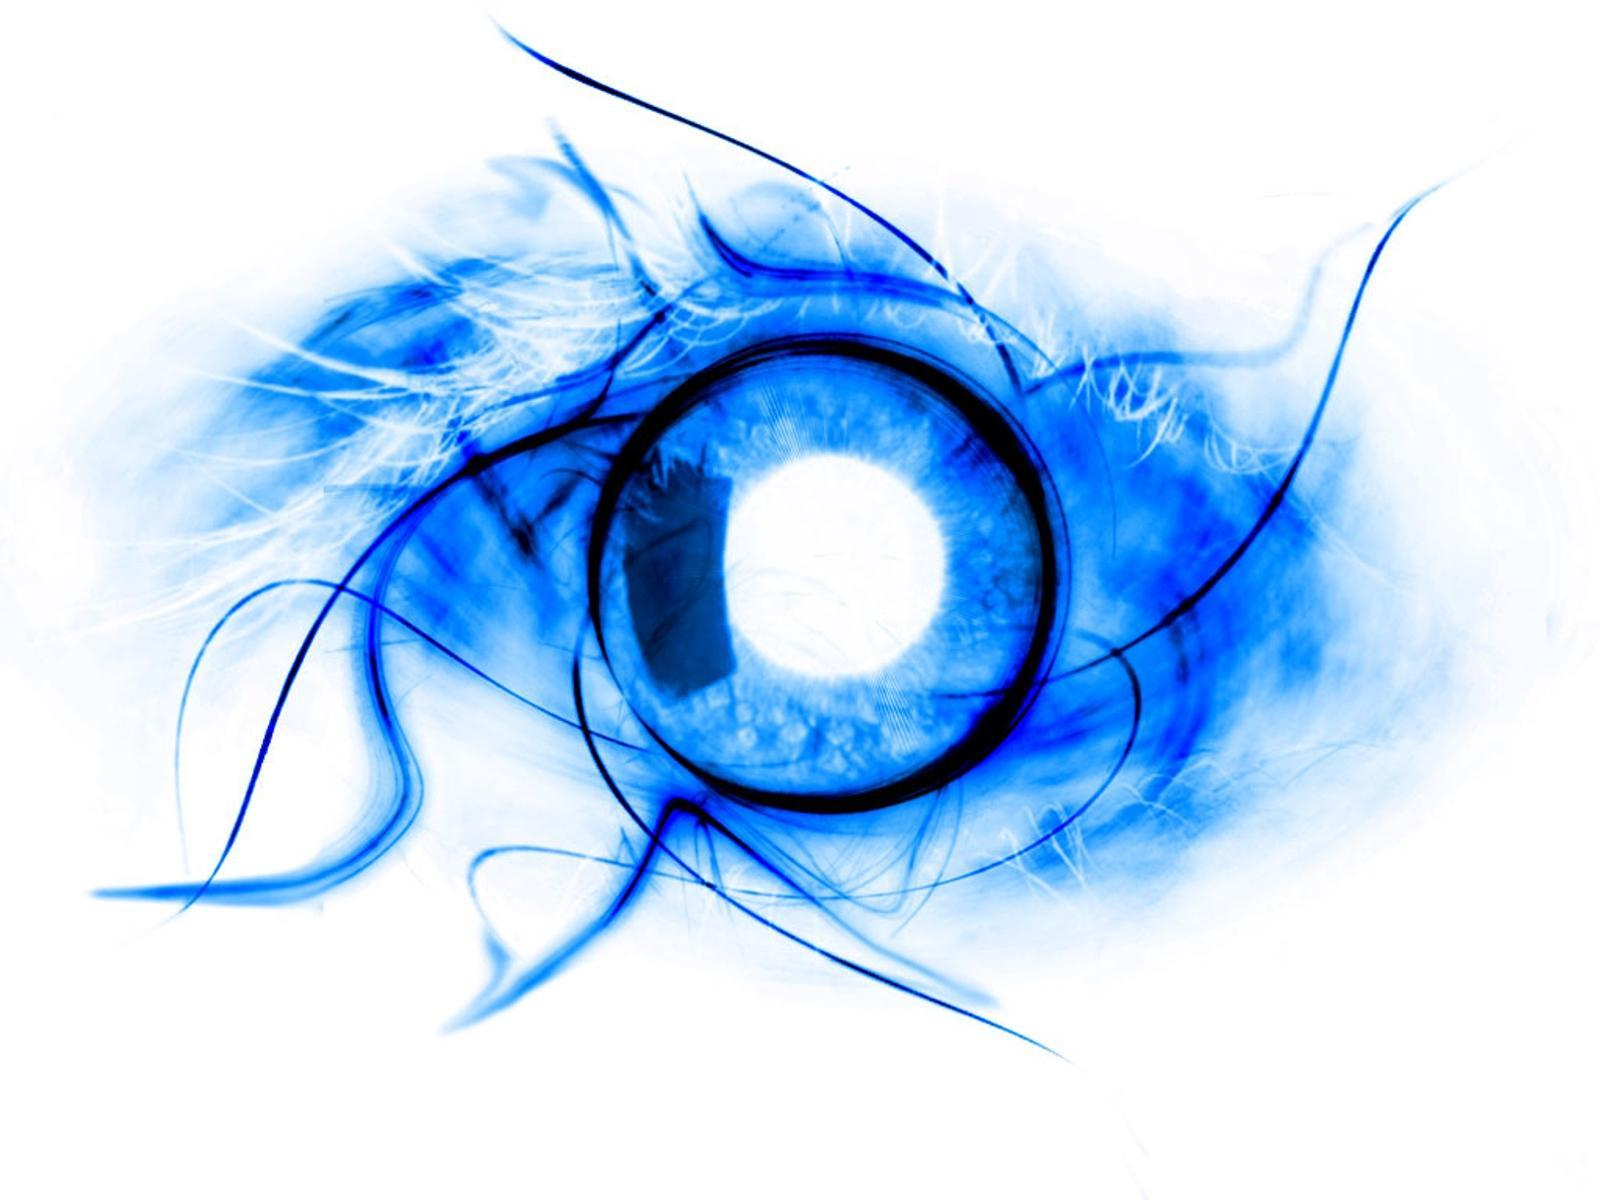 inverted eye HD Wallpaper